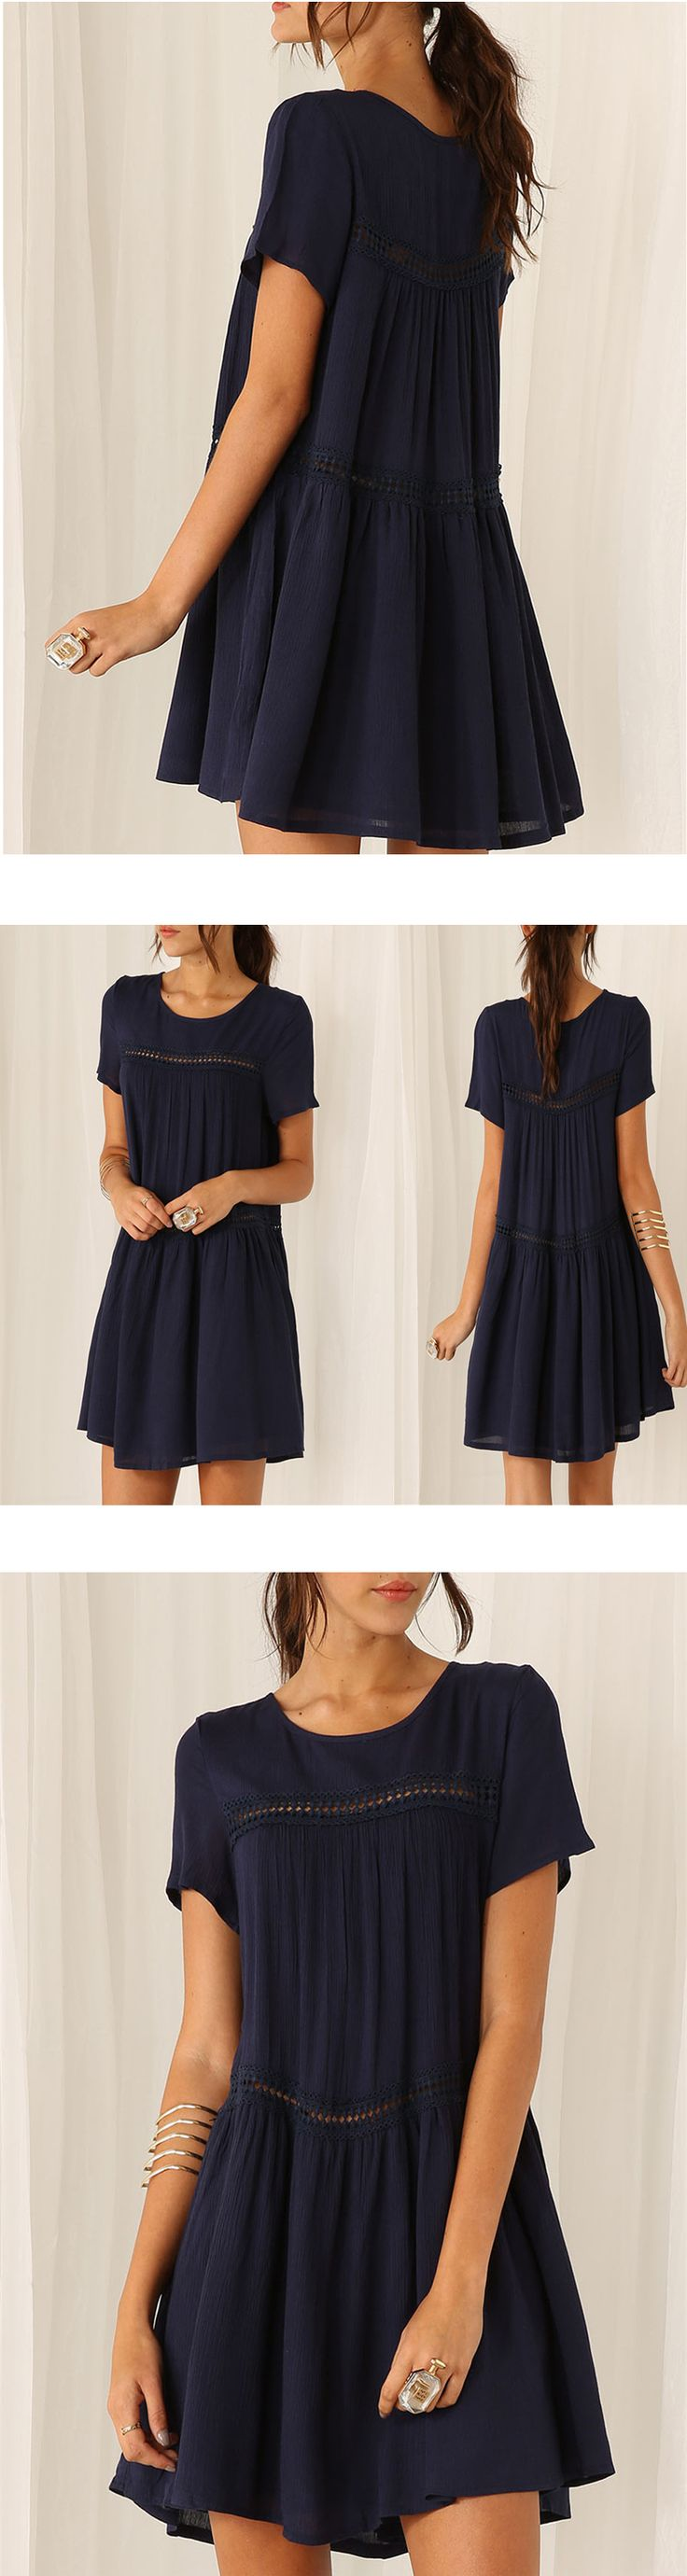 Navy Short Sleeve Shift Dress -SheIn(Sheinside)